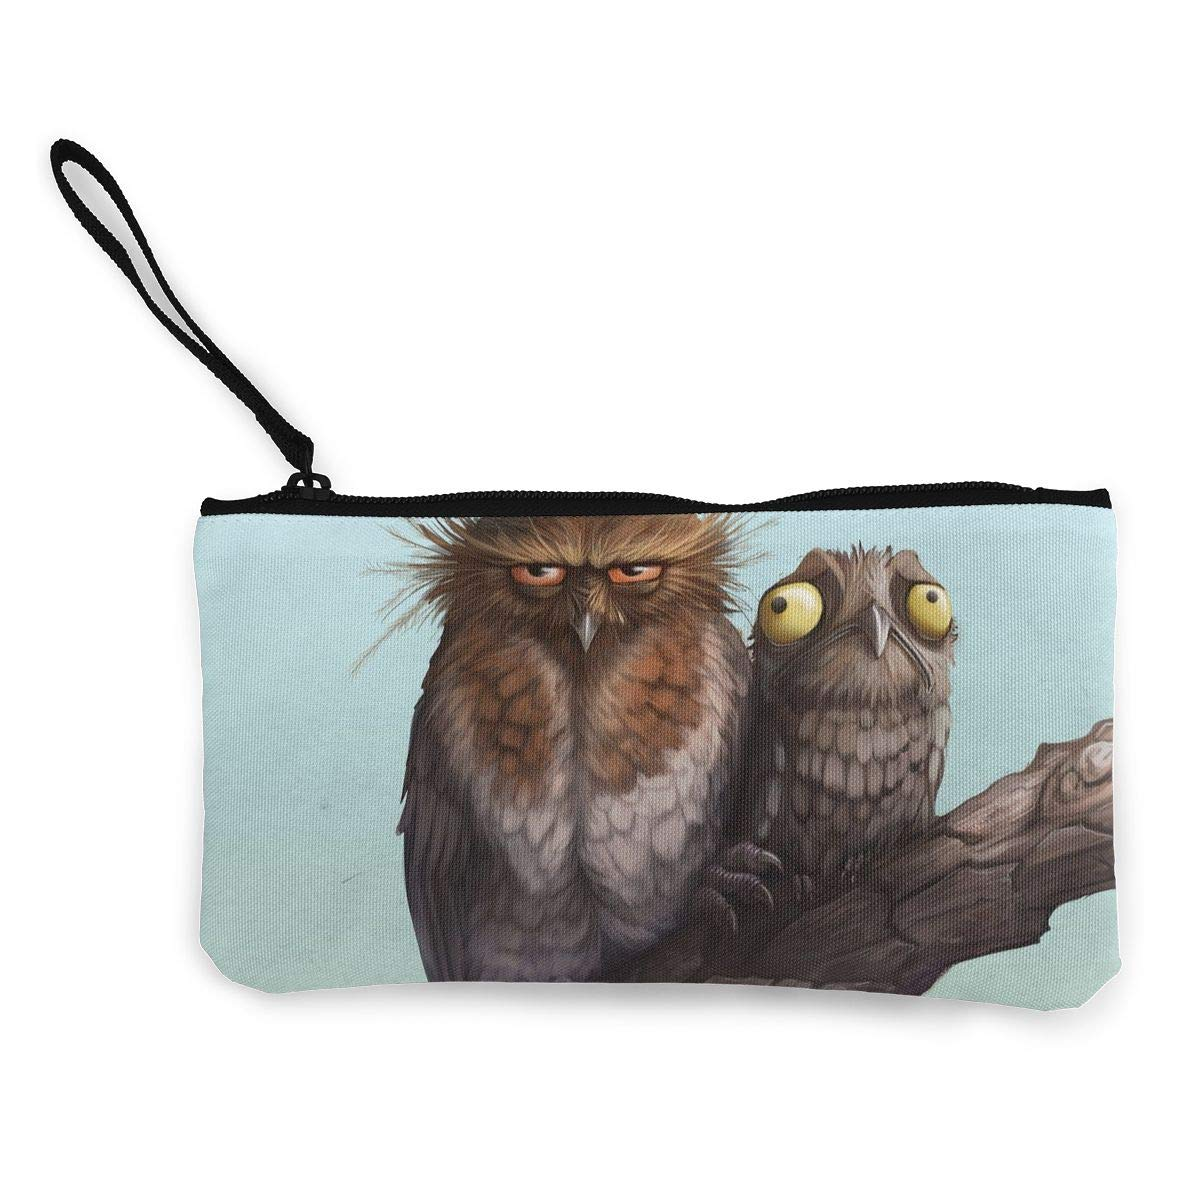 Coin Pouch Funny Whiskered Owl And Potoo Painting Canvas Coin Purse Cellphone Card Bag With Handle And Zipper